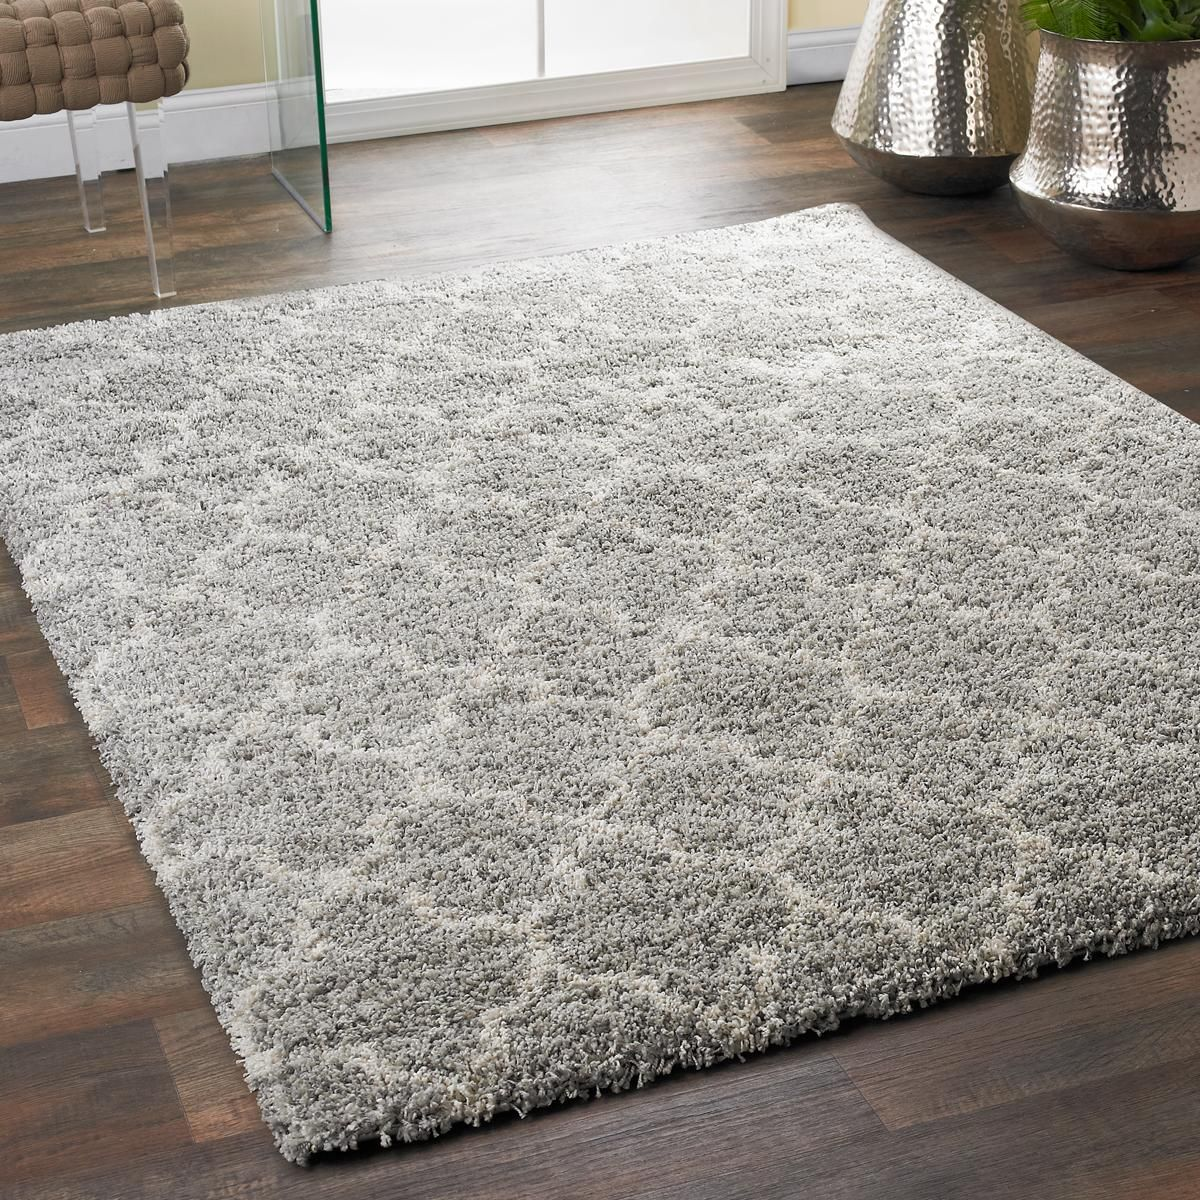 plush area rug plush area rugs wool area rugs living room area rugs